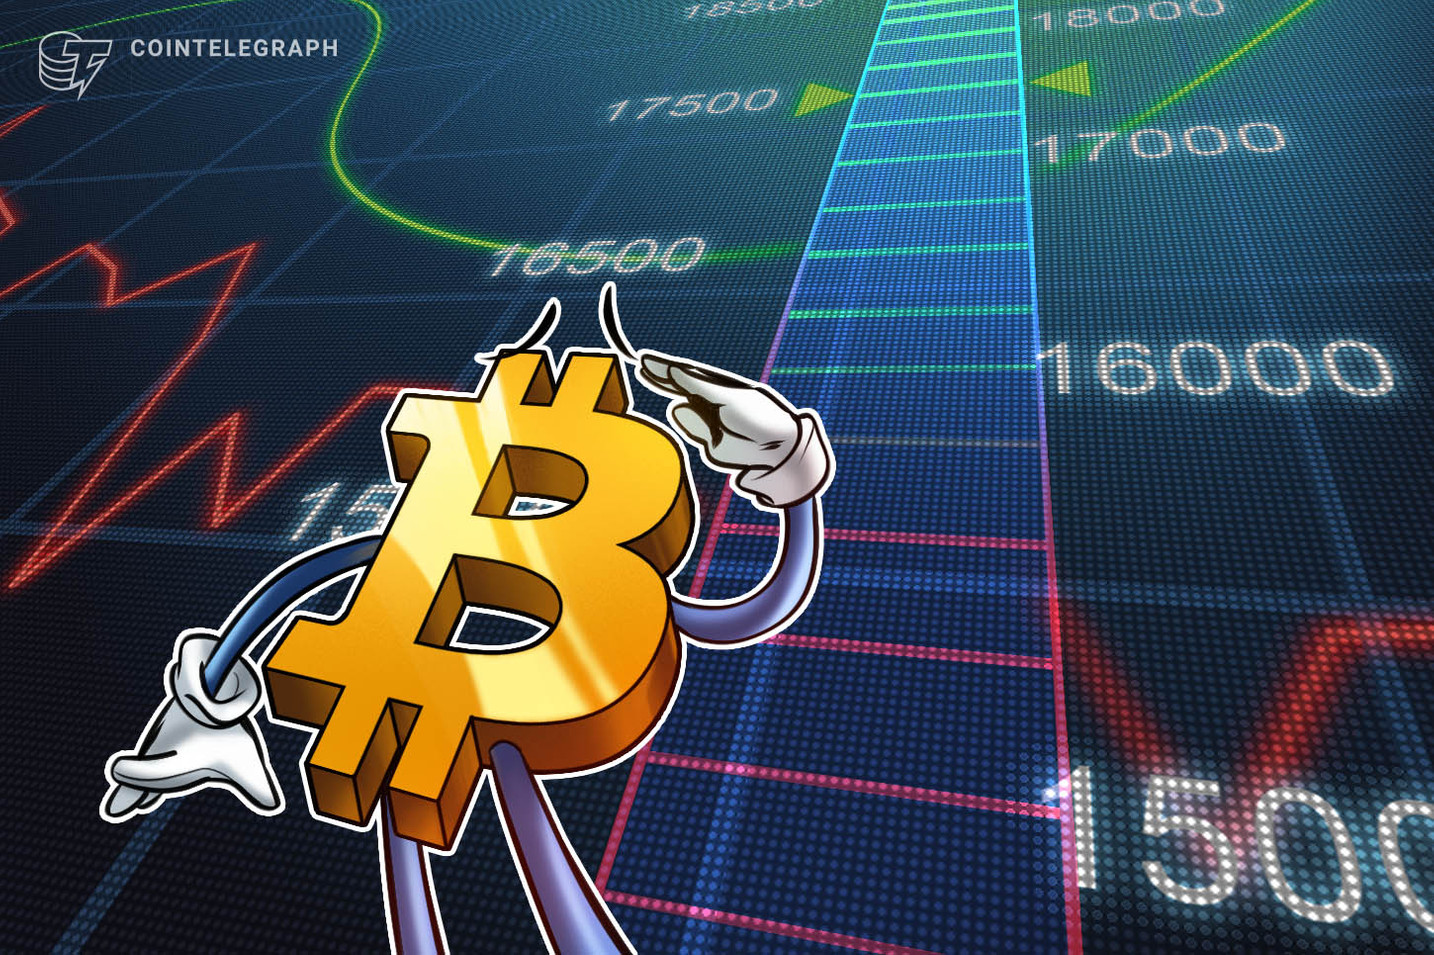 3 reasons Bitcoin price just hit $16,000 for the first time since 2017